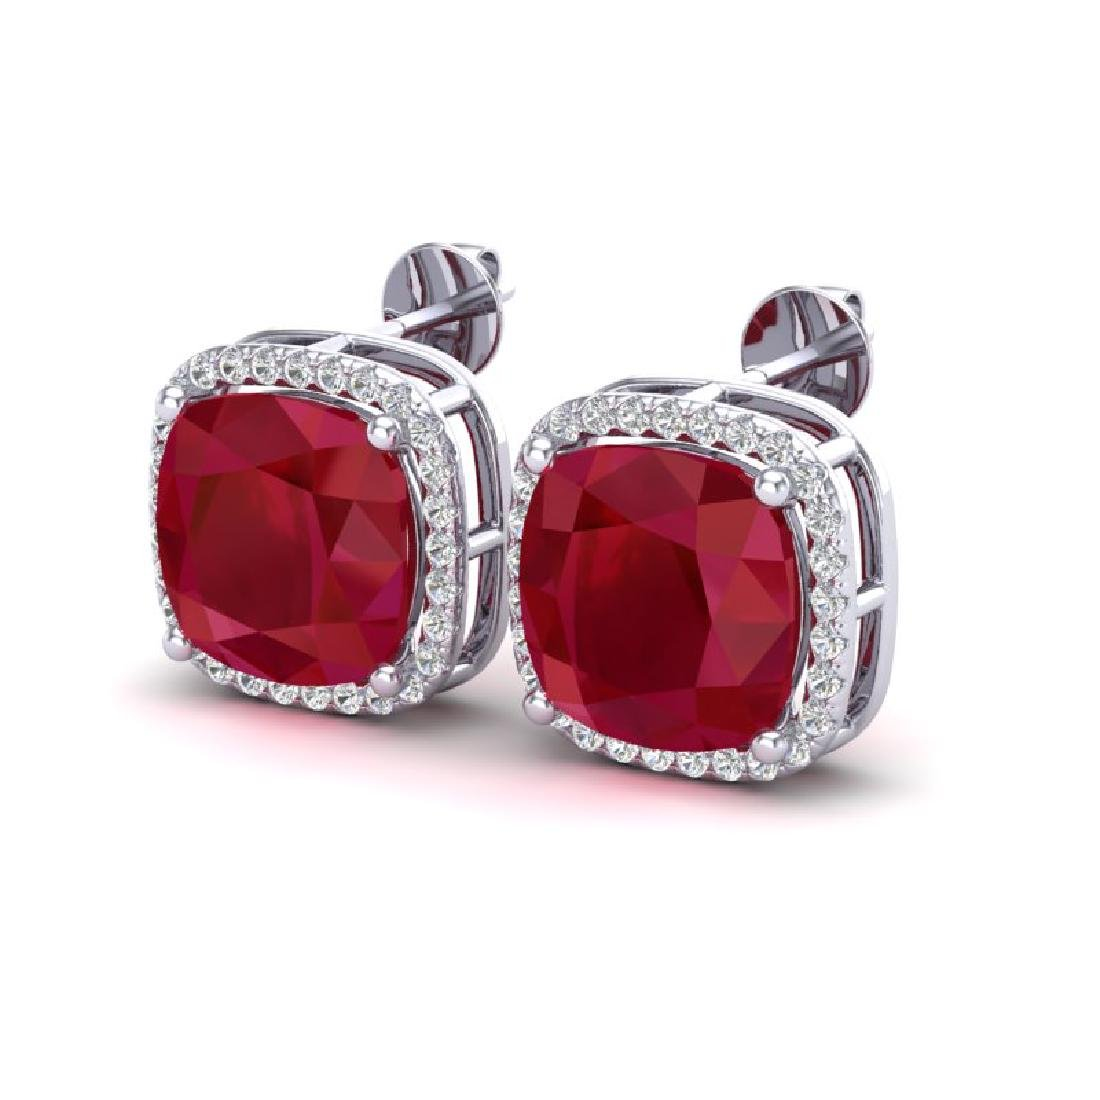 12 CTW Ruby & Micro Pave Halo VS/SI Diamond Earrings